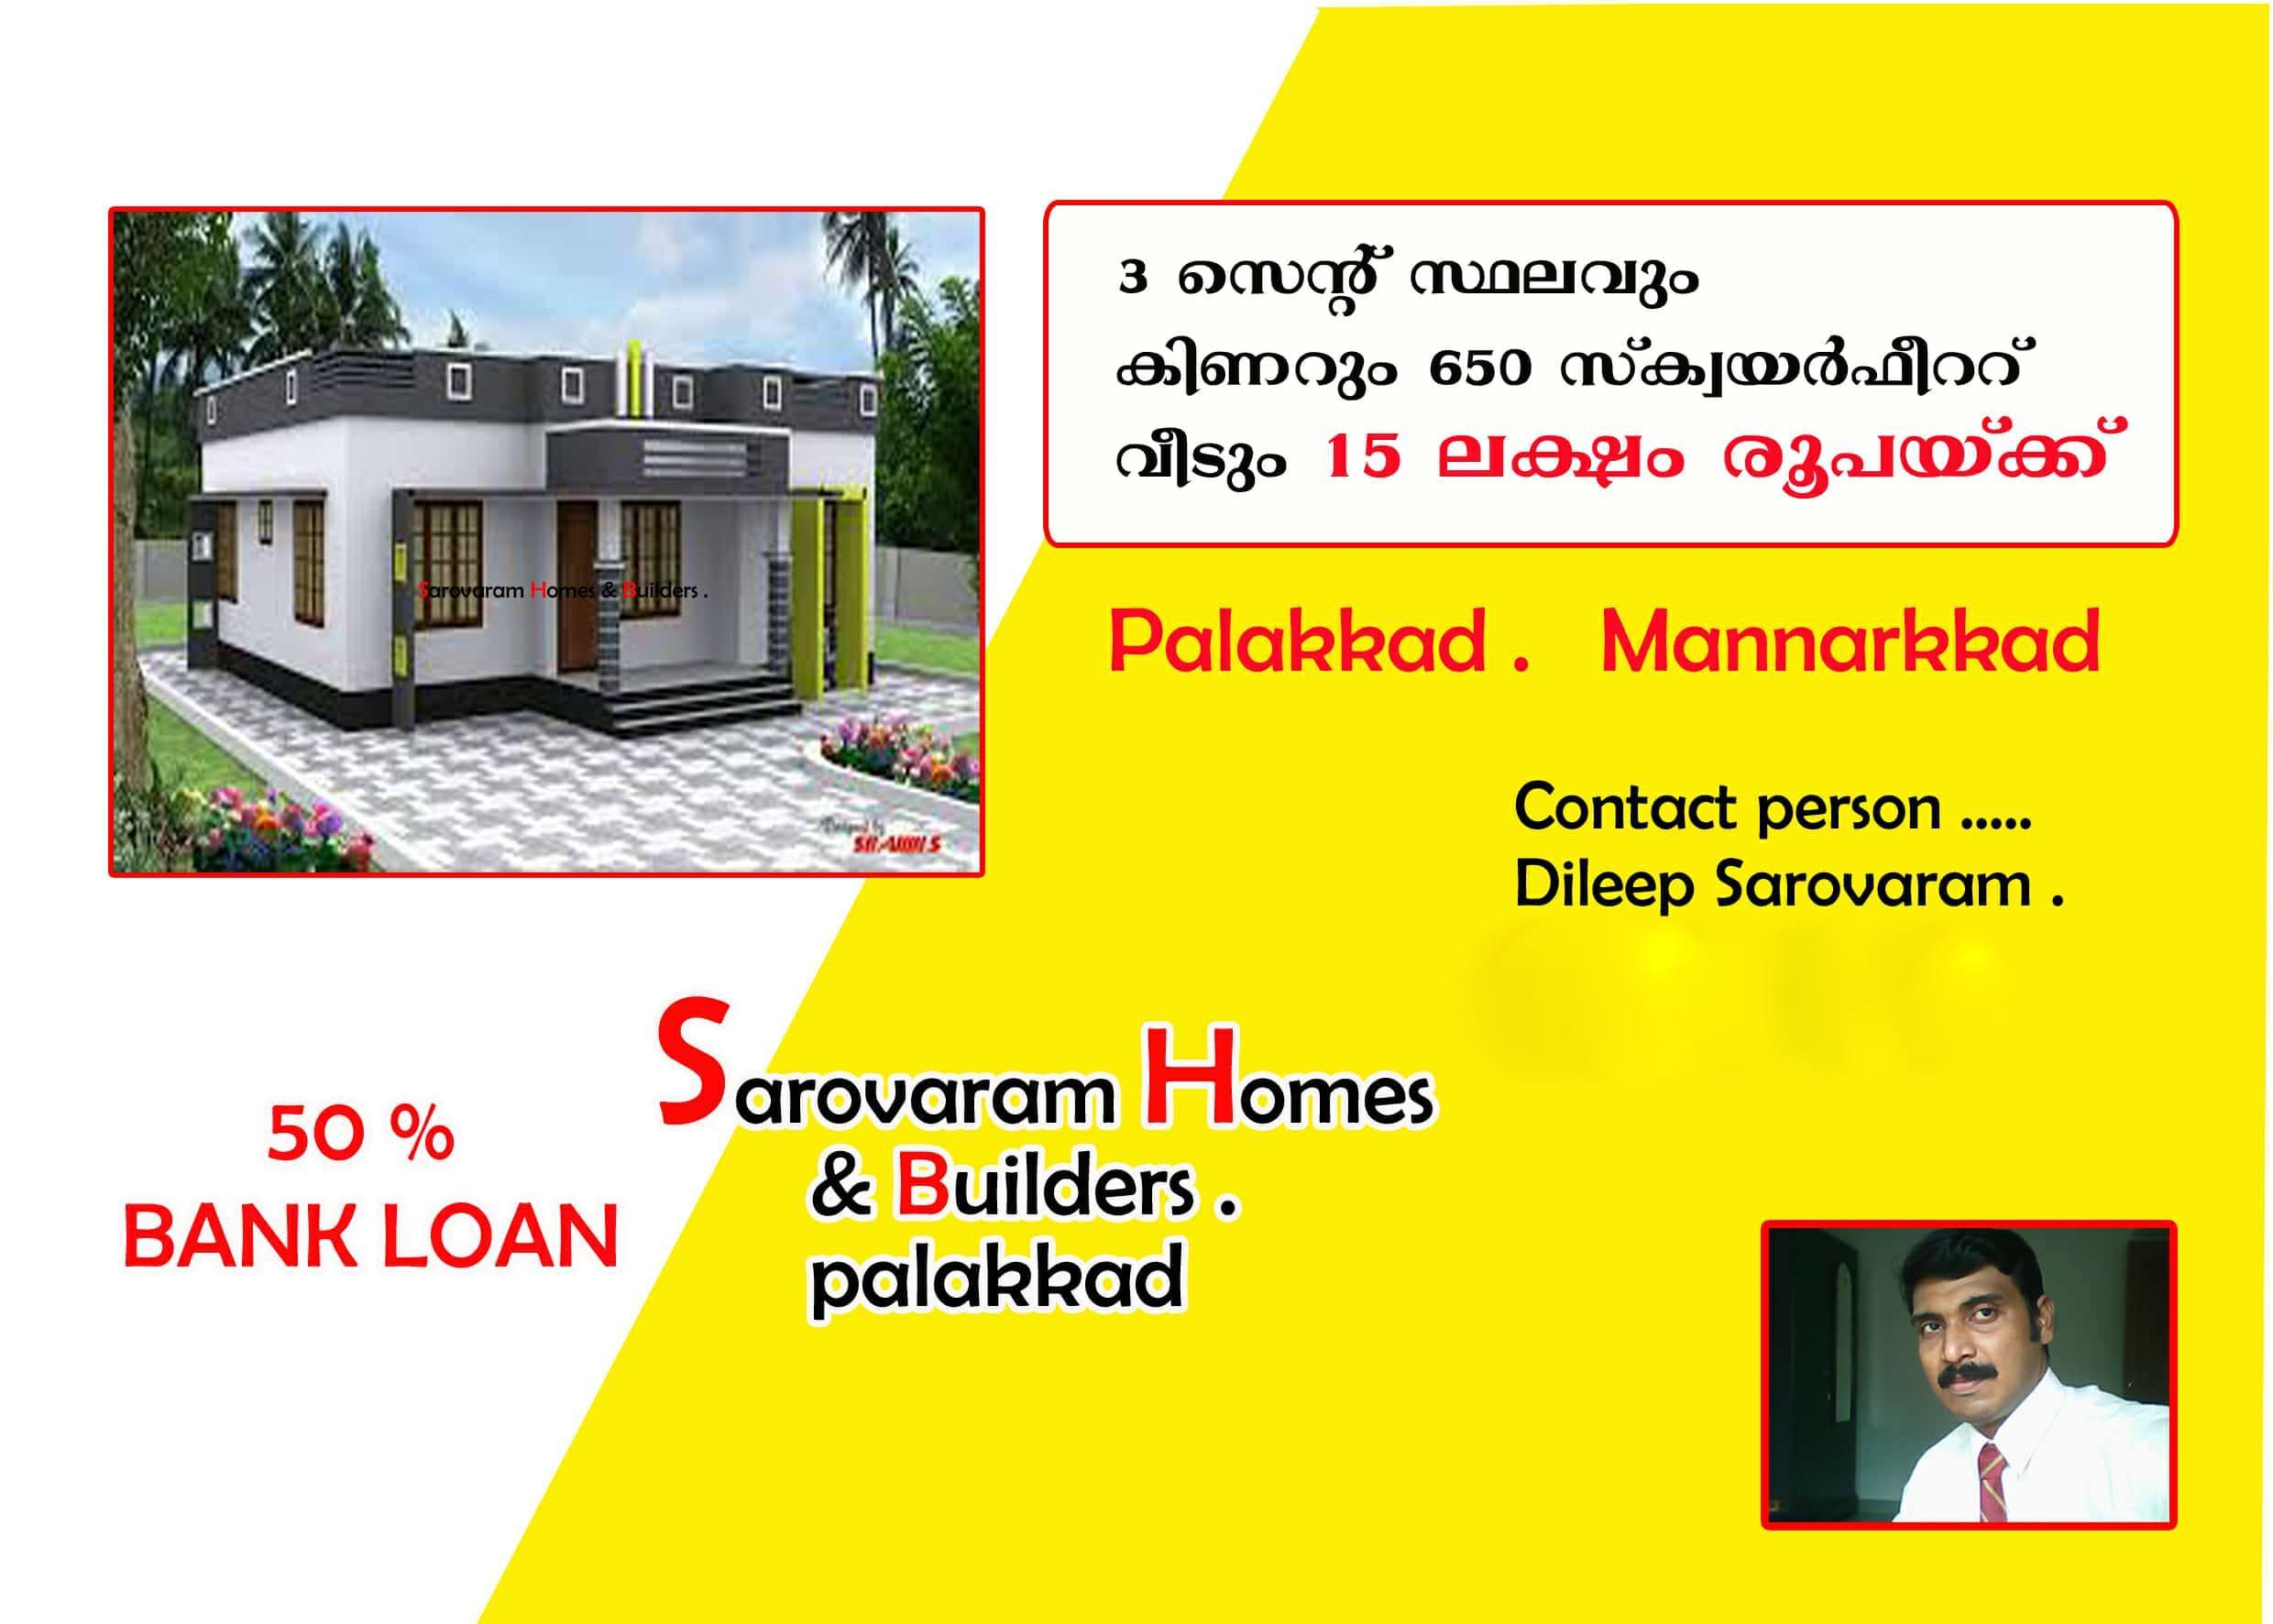 650 Square Feet 2 Bedroom Home Design and 3 Cent Plot With Well For 15 Lacks